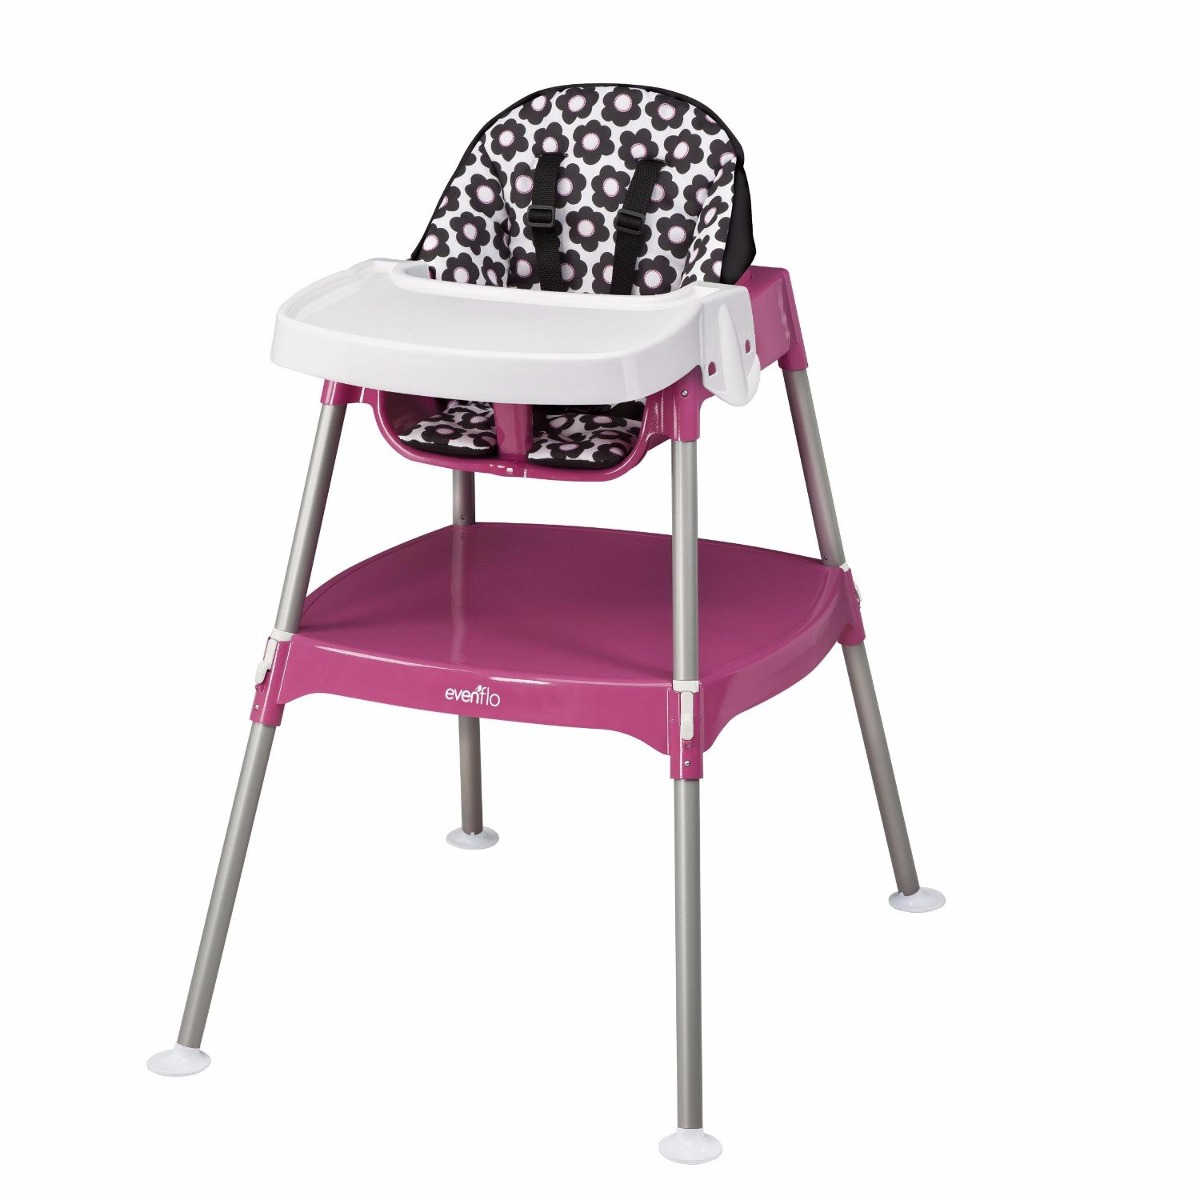 Mamas And Papas Pixi High Chair Pink in addition Img Ba high Chair Booster Seat Amazon moreover 130851381658 furthermore Lucite Folding Chairs additionally Evenflo Symmetry Flat Fold High Chair On Sale 40 05 Reg 56 21. on evenflo 2 in 1 high chair